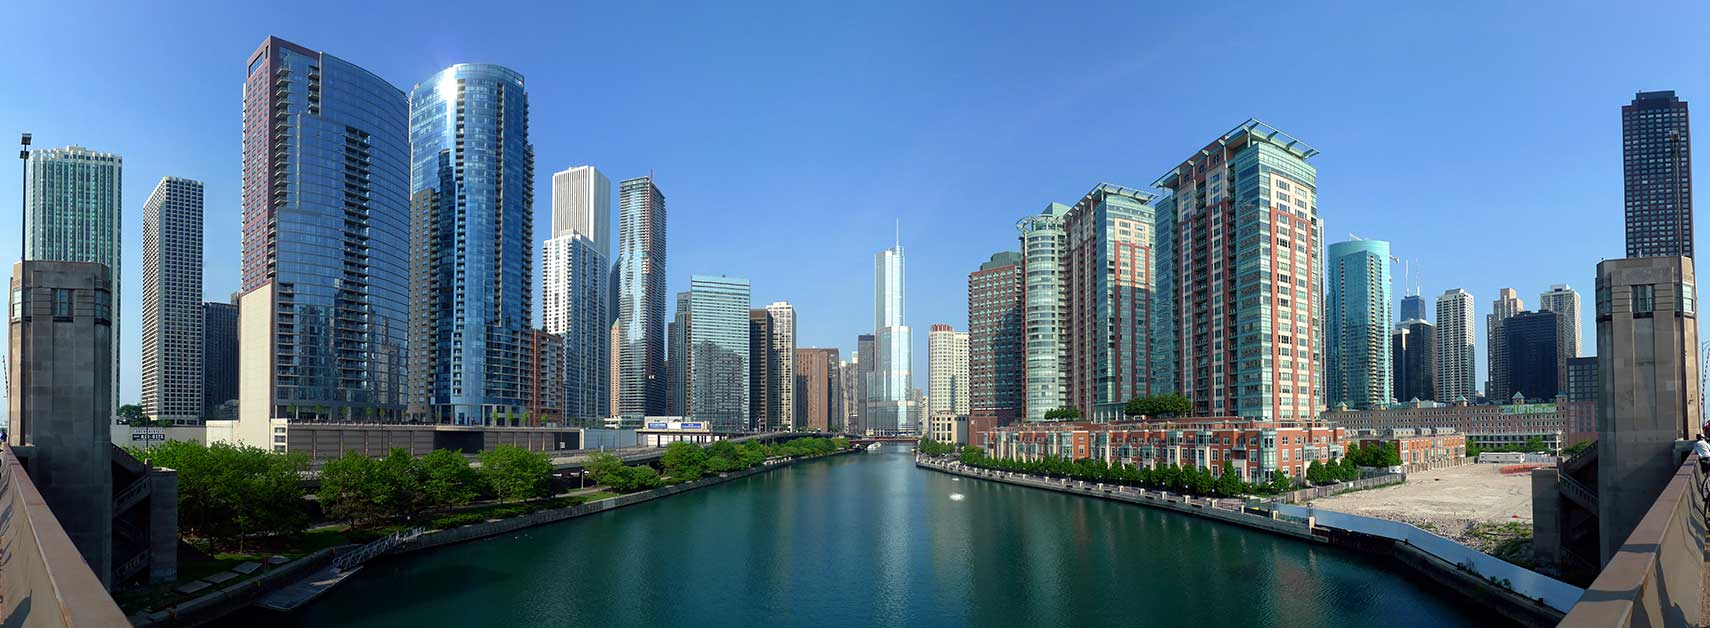 Google Map Of Chicago Illinois USA Nations Online Project - Us map chicago illinois